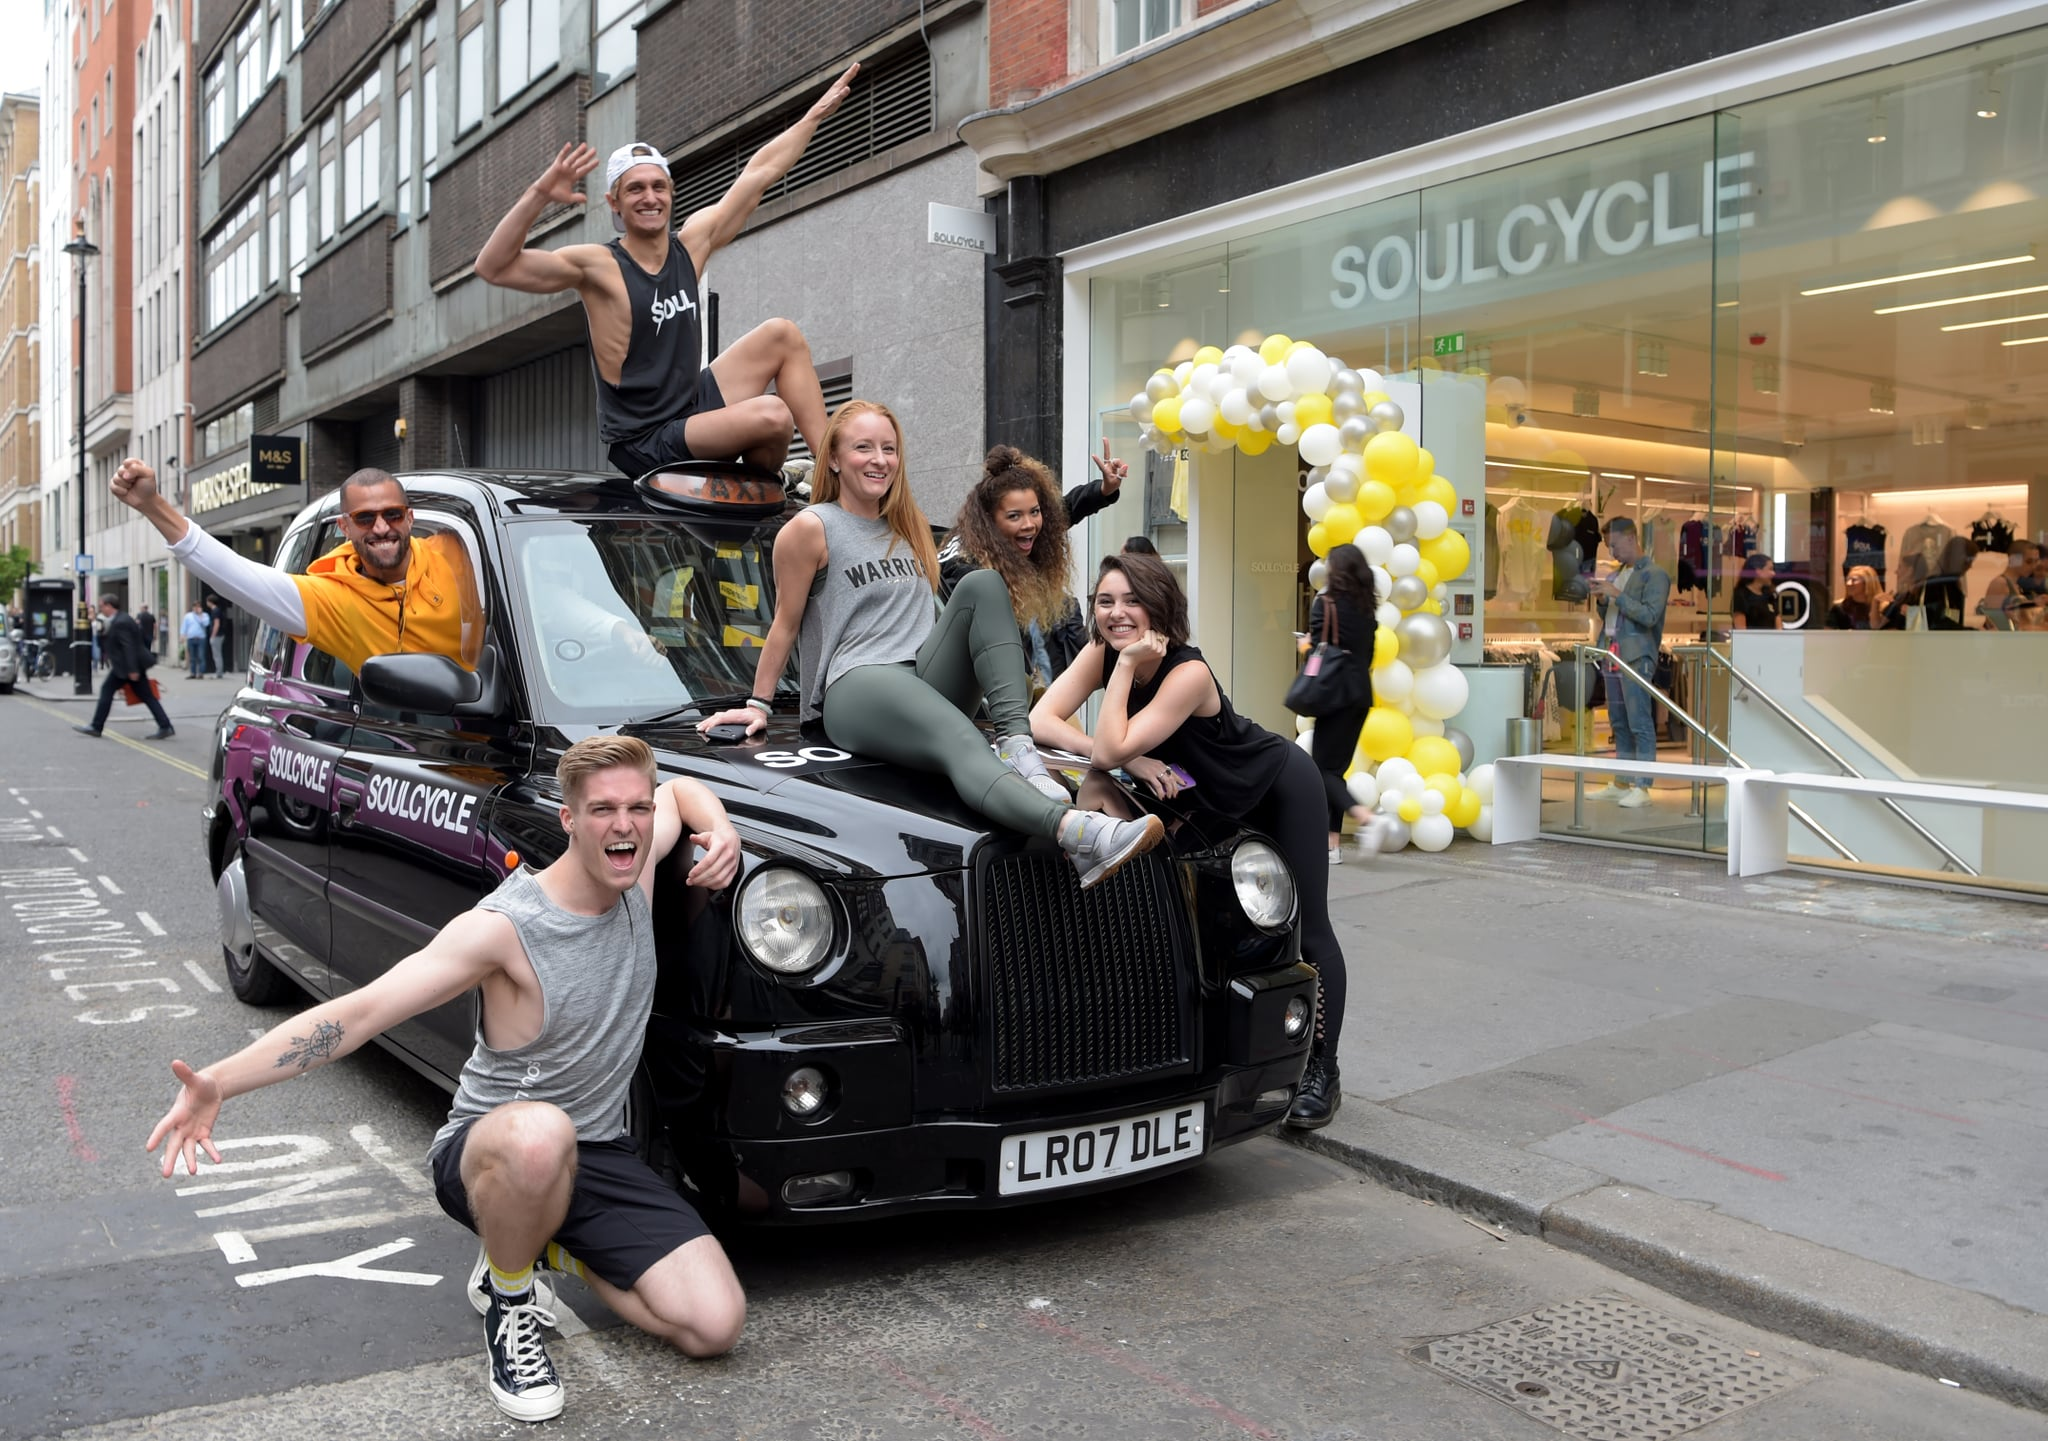 LONDON, ENGLAND - JUNE 05: The SoulCycle instructors at the UK launch of luxury lifestyle brand, SoulCycle ahead of its first official London opening on 14th June on June 05, 2019 in London, England. (Photo by David M. Benett/Dave Benett/Getty Images for SoulCycle London )